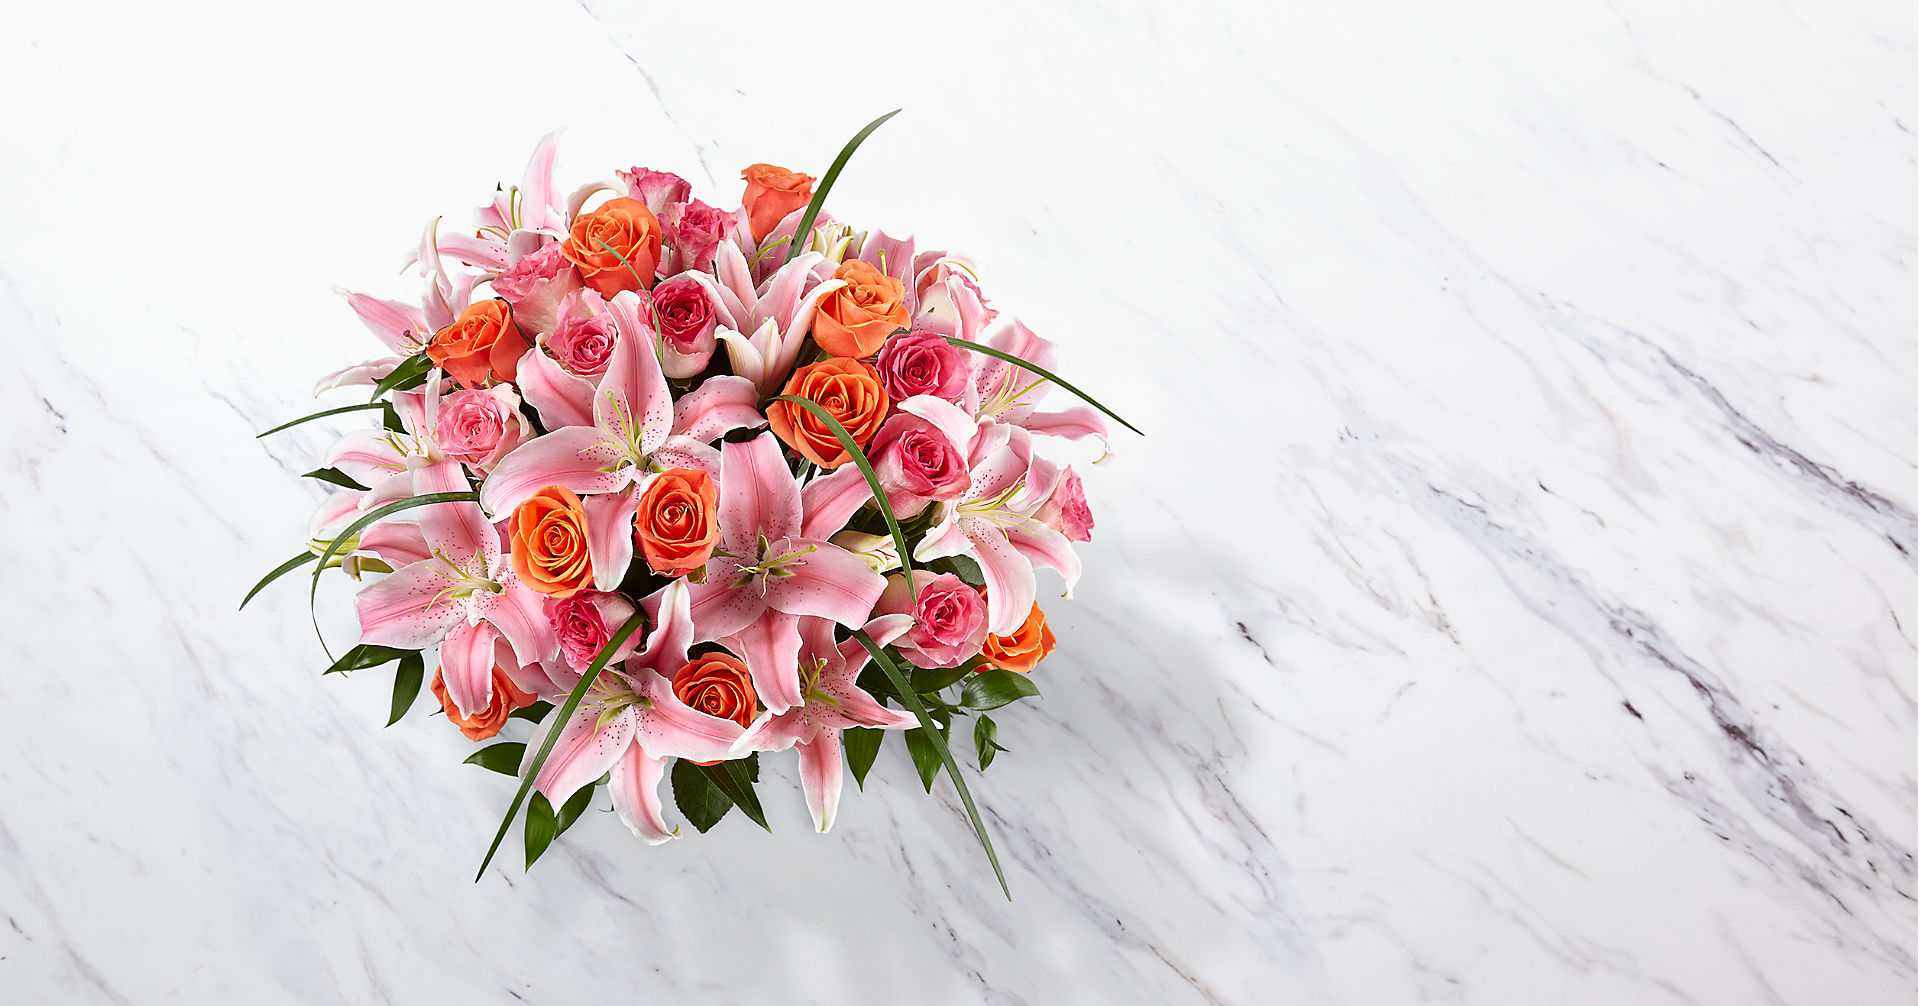 Sweetly Stunning™ Luxury Bouquet - Image 2 Of 3